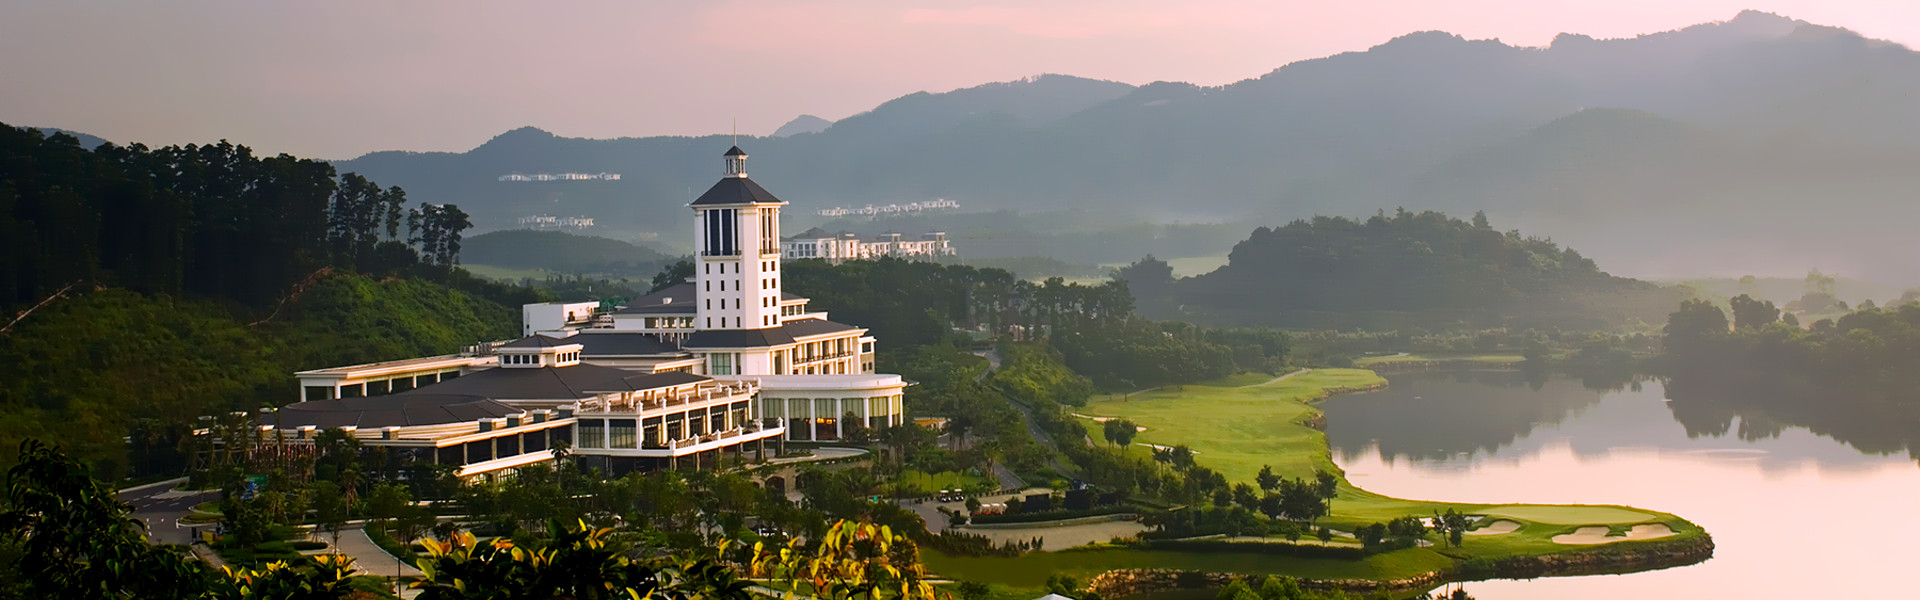 Olazabal Course Mission Hills China Clubhouse and 18th hole